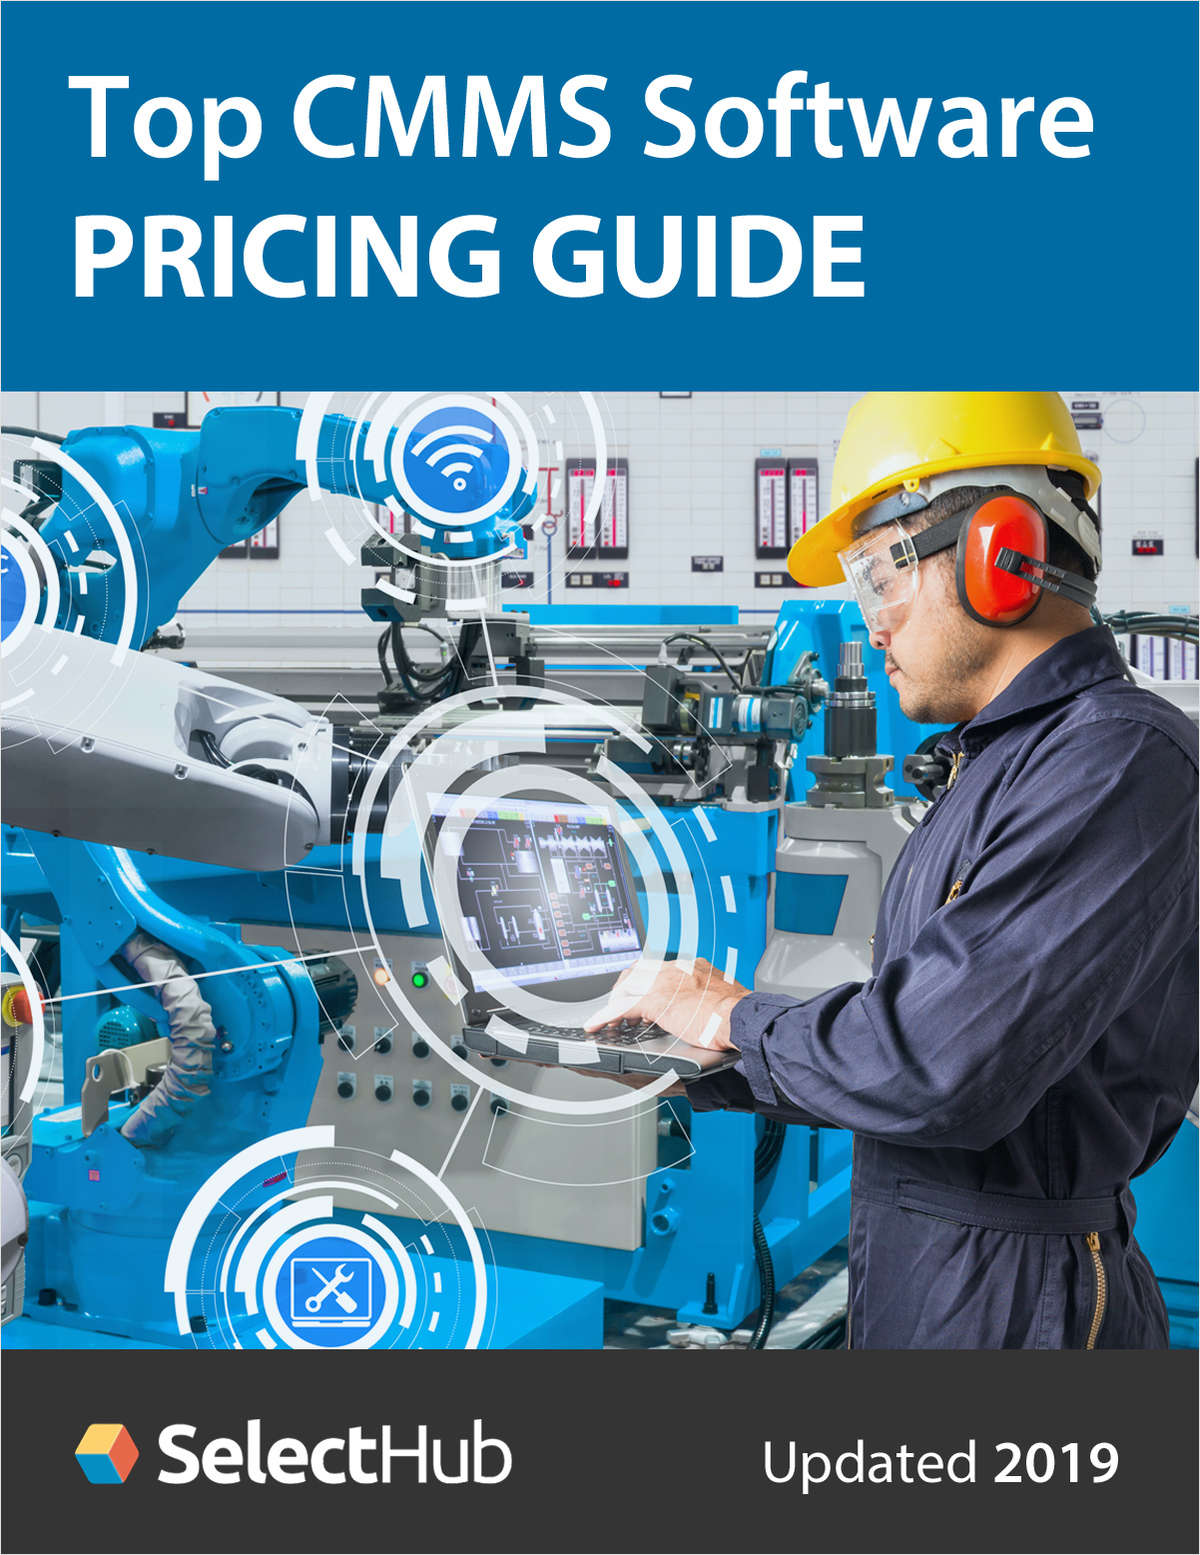 CMMS Software: Top 10 Pricing Guide 2019